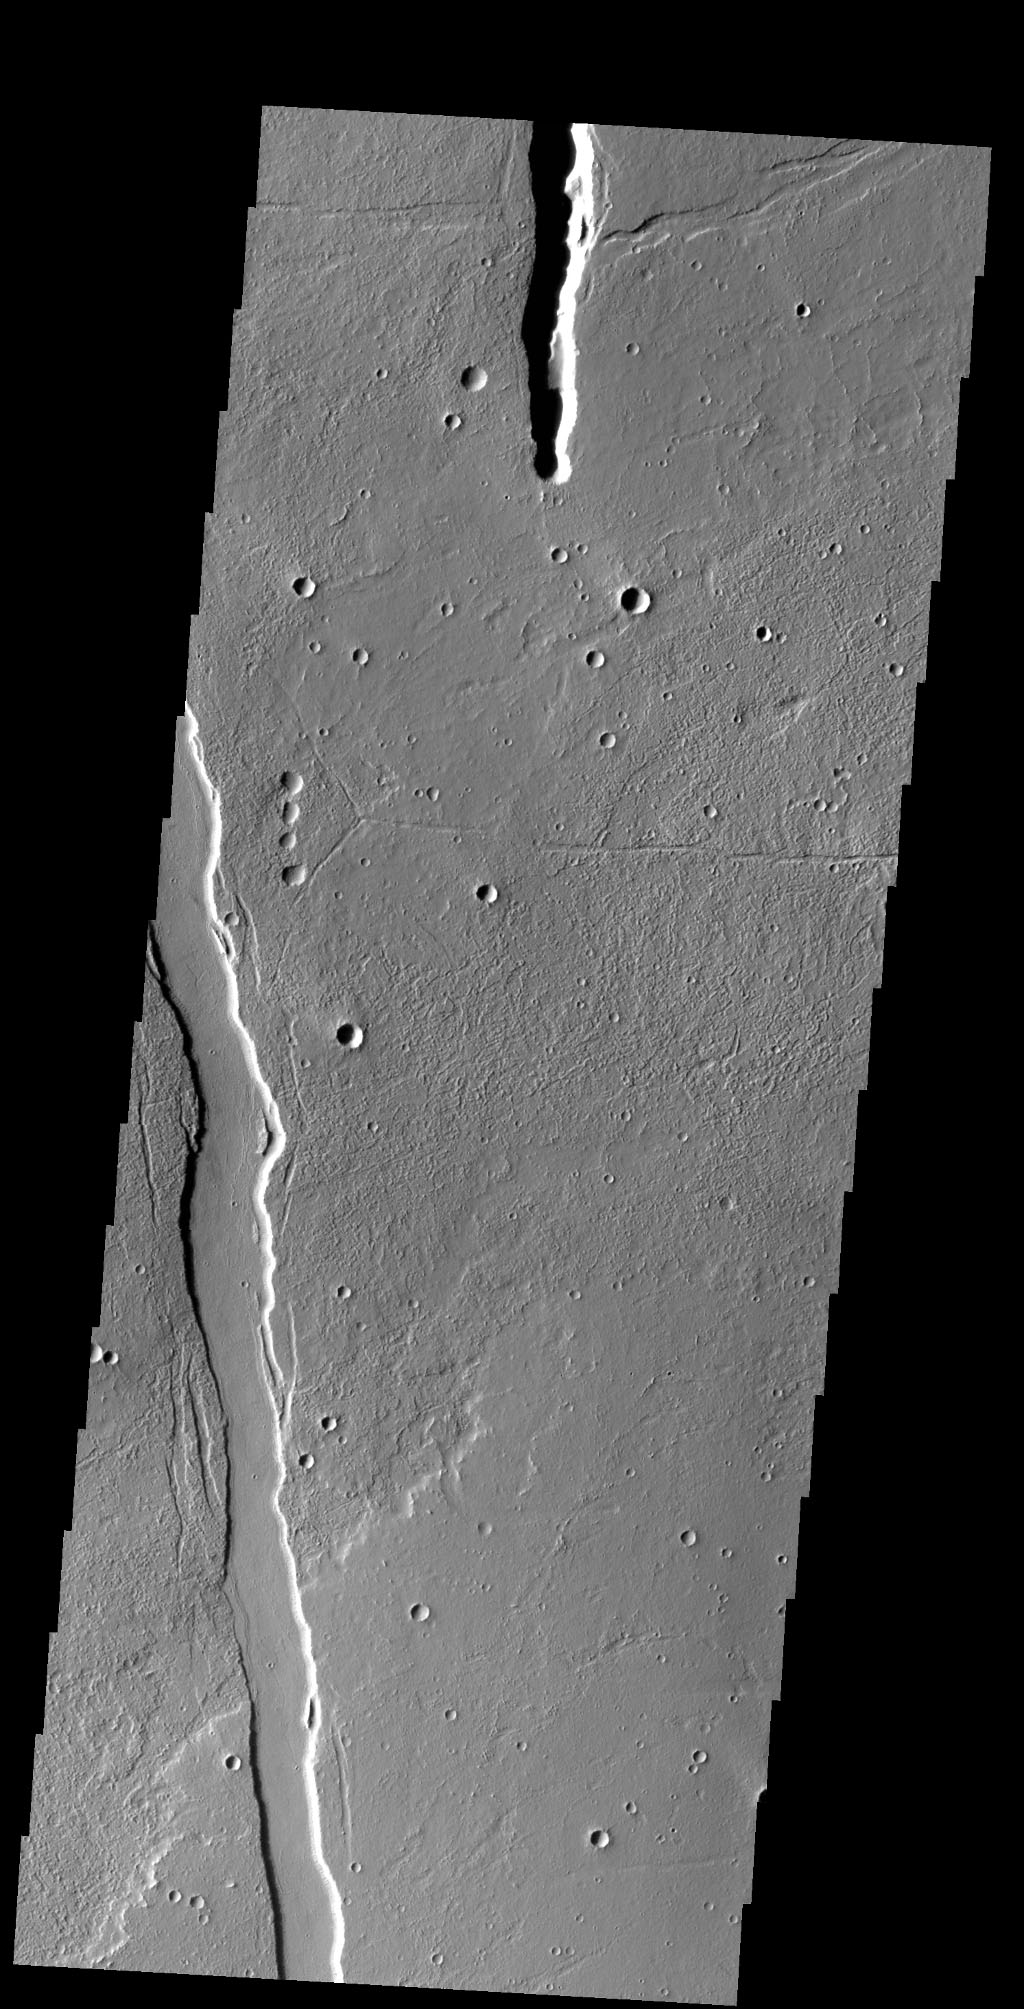 The linear depressions in this image from NASA's 2001 Mars Odyssey spacecraft are called graben. Graben are bounded on both sides by faults, and the central material has shifted downward between the faults.